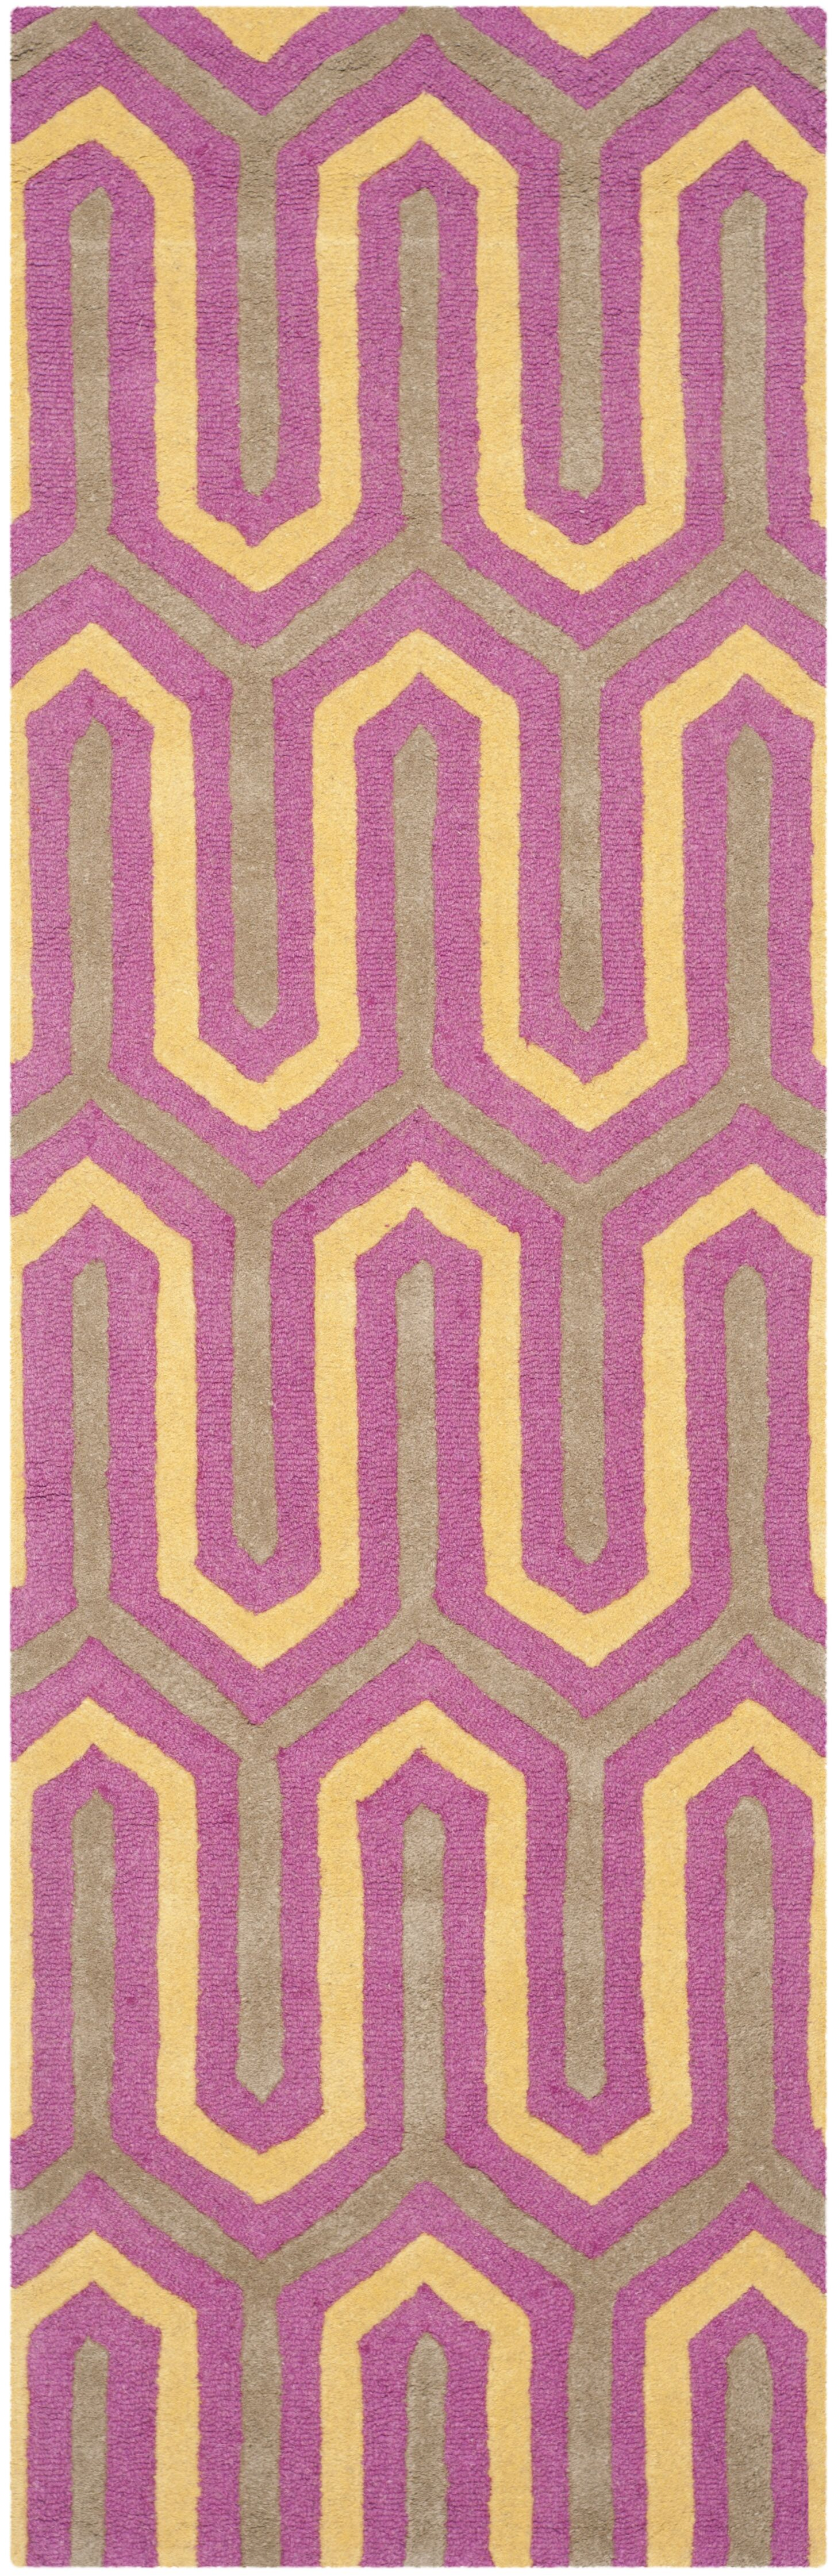 Martins Hand-Tufted Pink/Gray Area Rug Rug Size: Runner 2'6